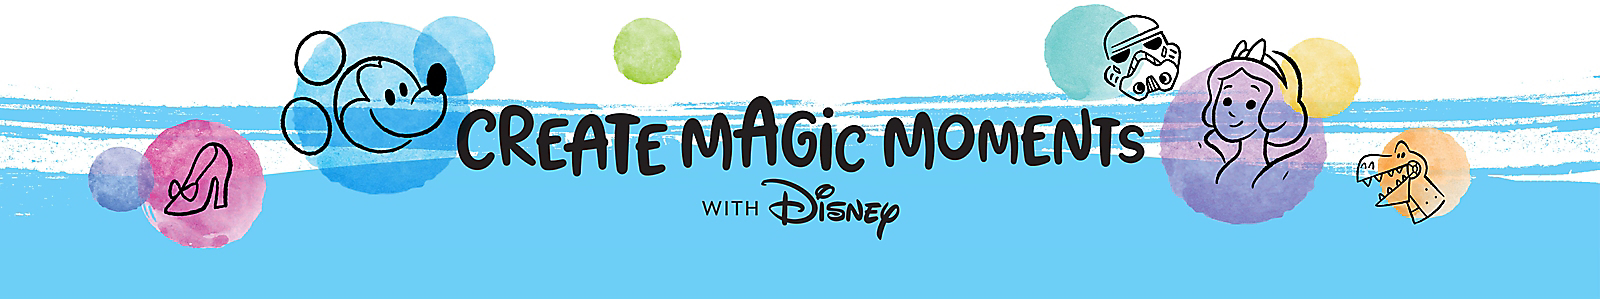 Create Magic Moments with Disney [logo]